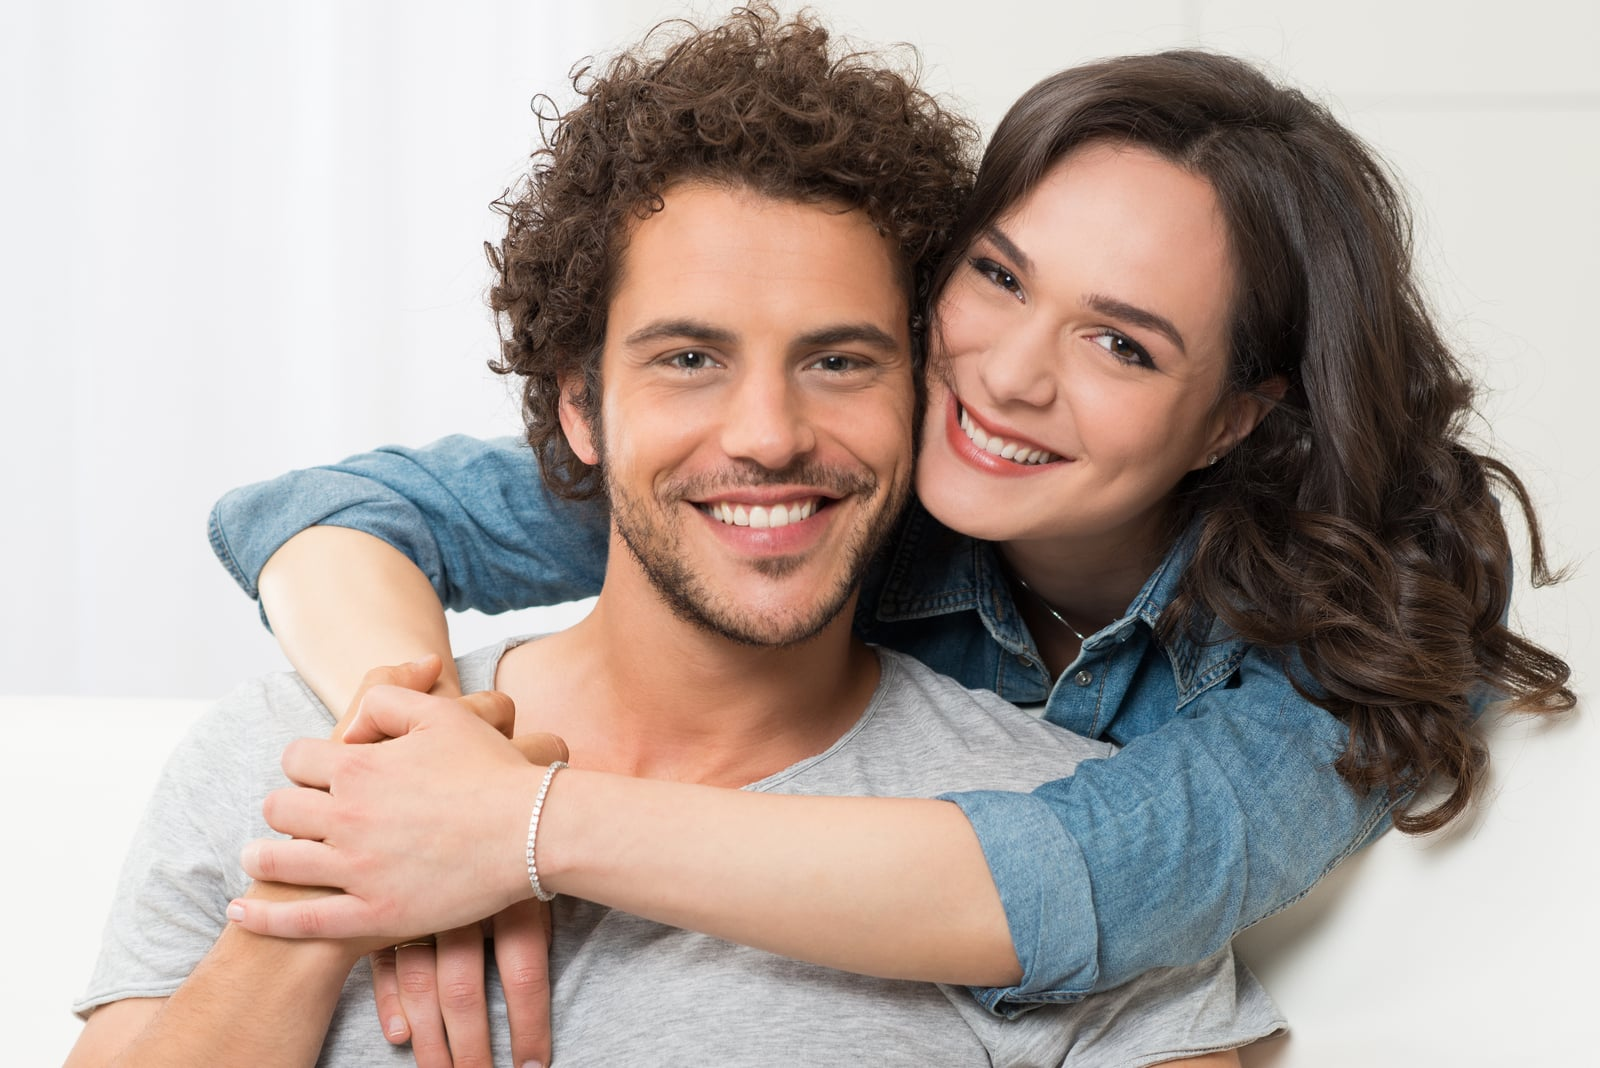 portrait of young smiling man and woman